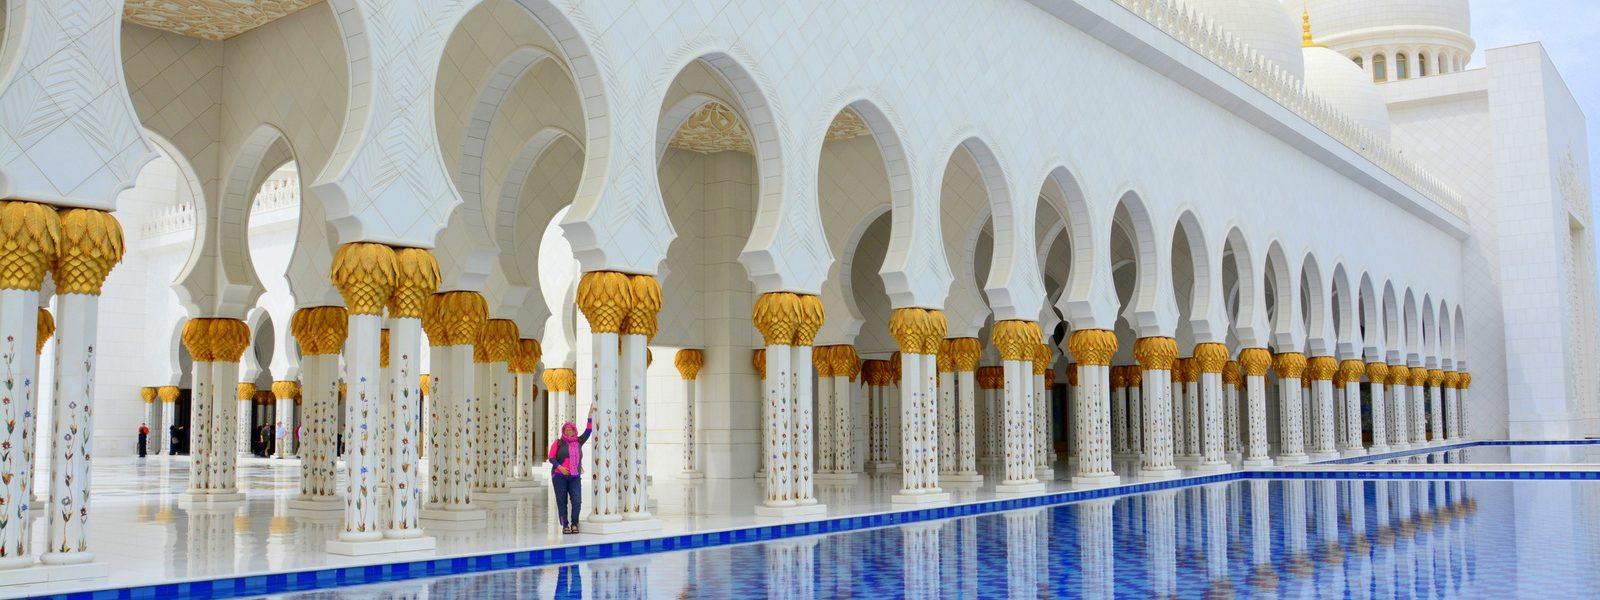 Abu Dhabi in Sheik Zayed Grand Mosque